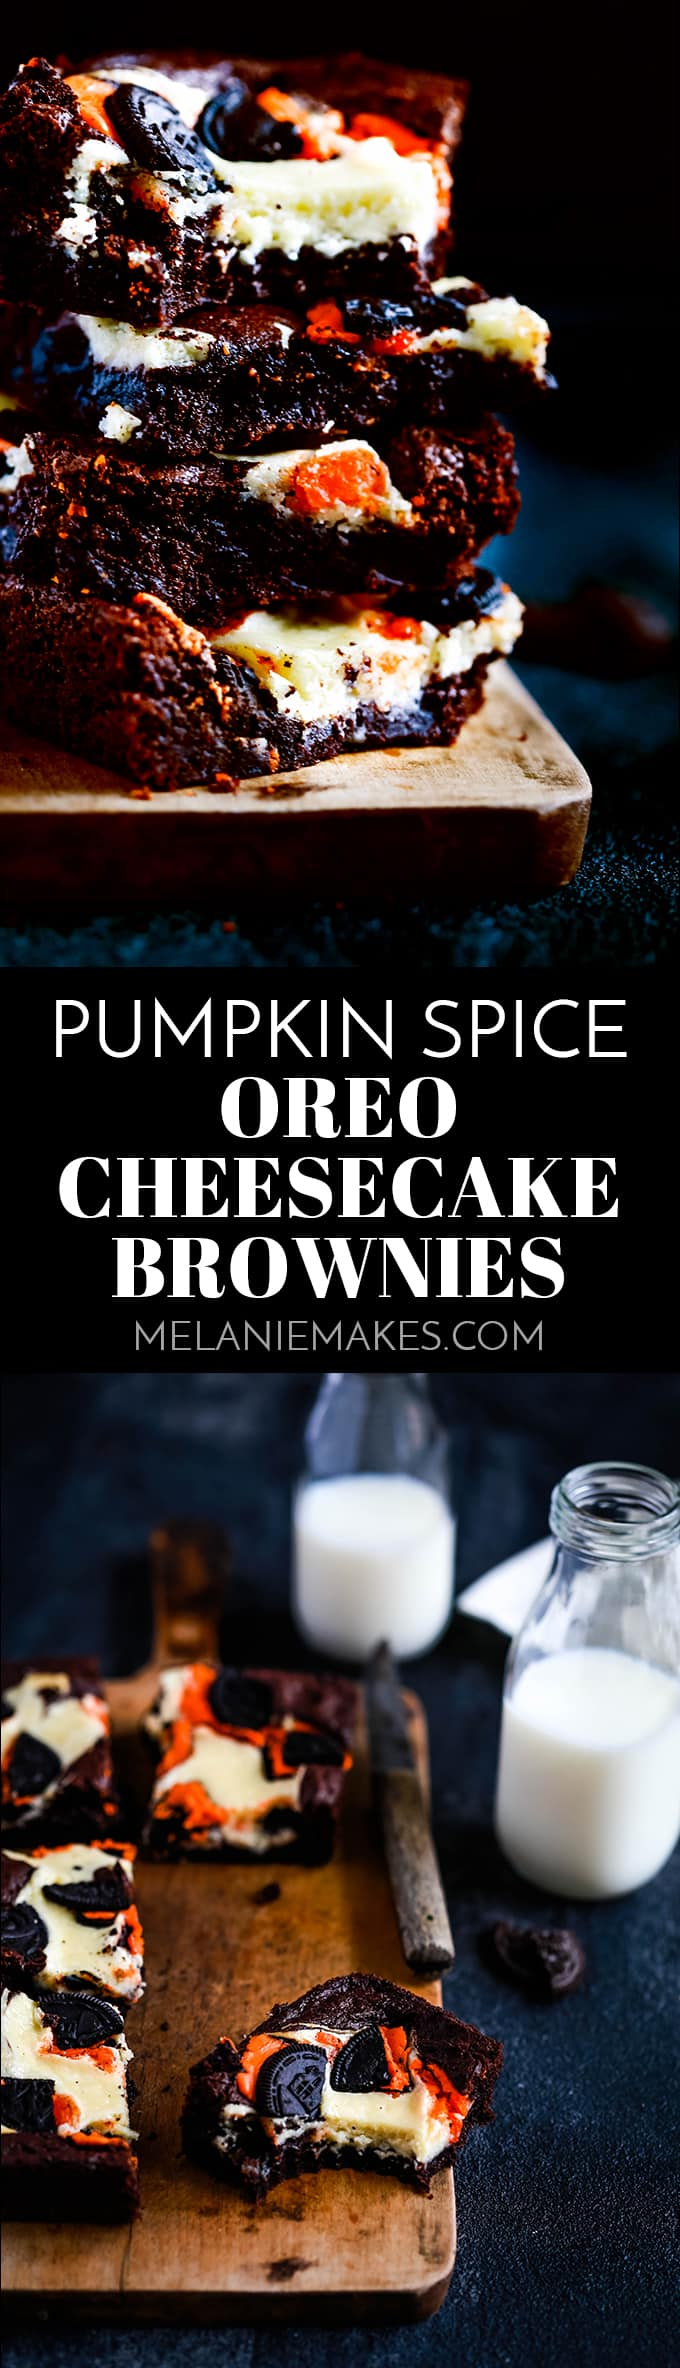 These Pumpkin Spice Oreo Cheesecake Browniesare adecadent chocolate treat with the warmth of autumn spices thanks to a shortcut ingredient. #pumpkinspice #oreos #oreocheesecake #brownies #autumn #fall #dessertrecipes